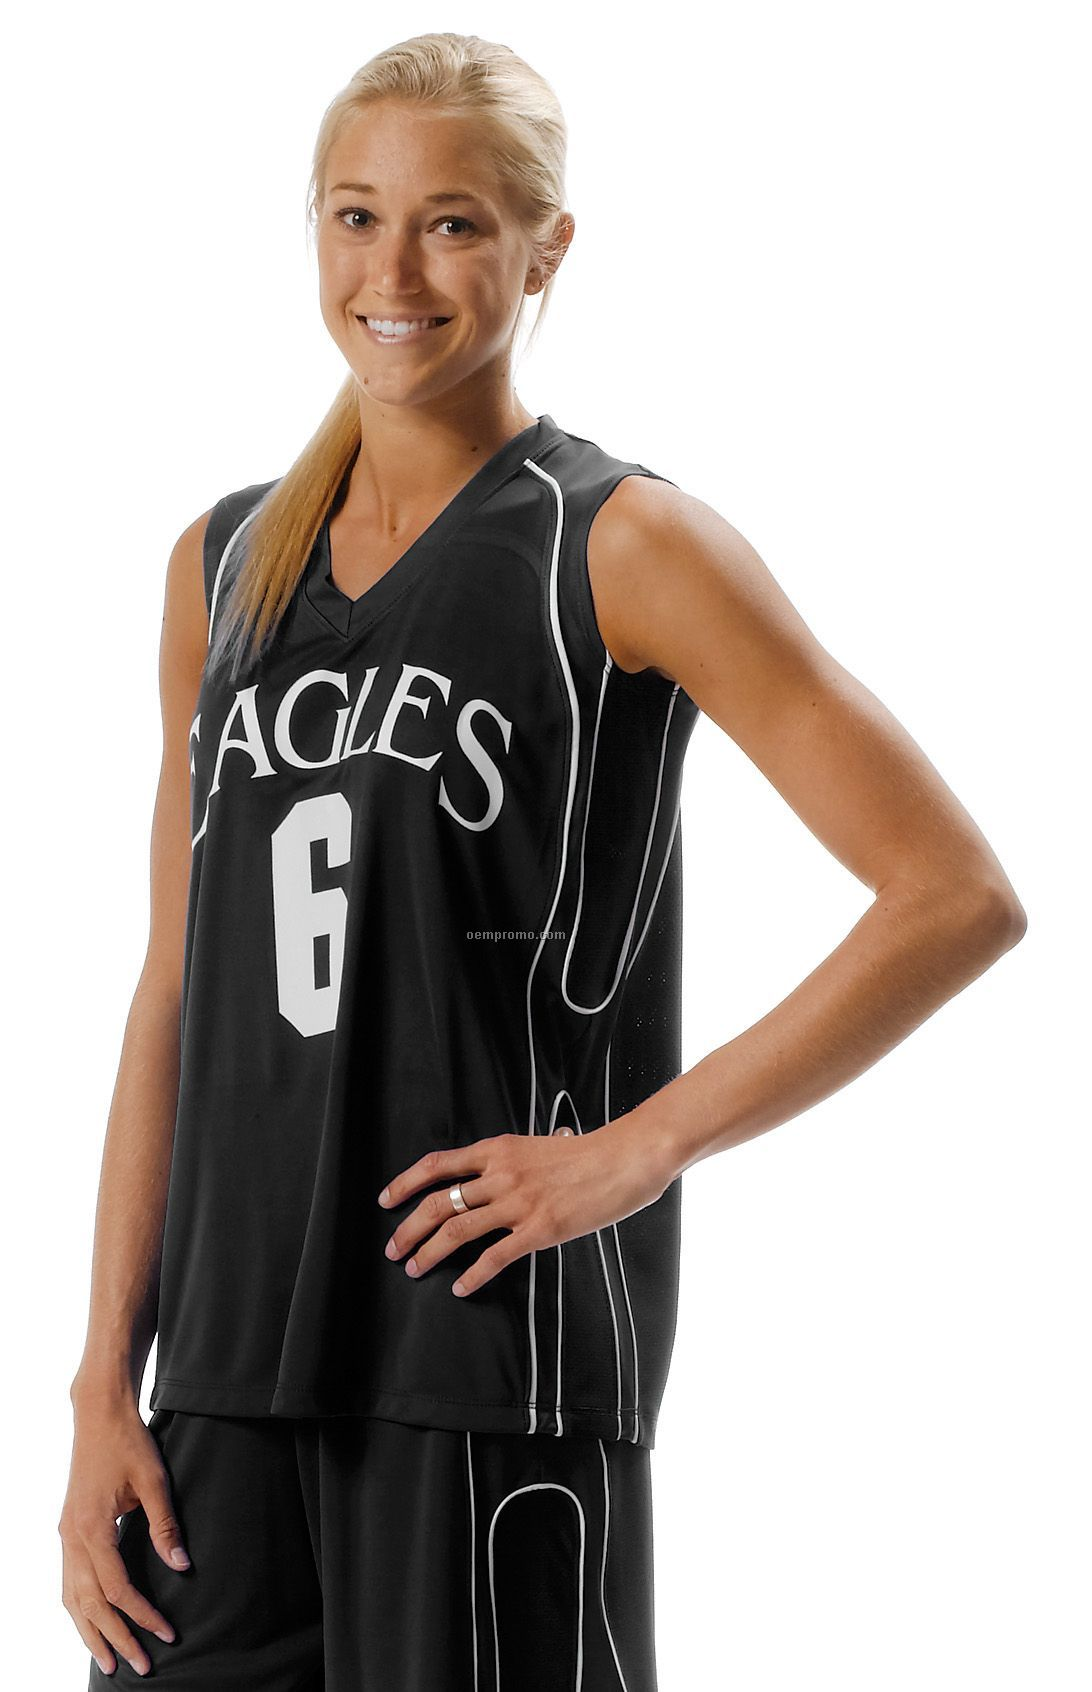 Nw2322 Women's Moisture Management Game Muscle Basketball Jersey